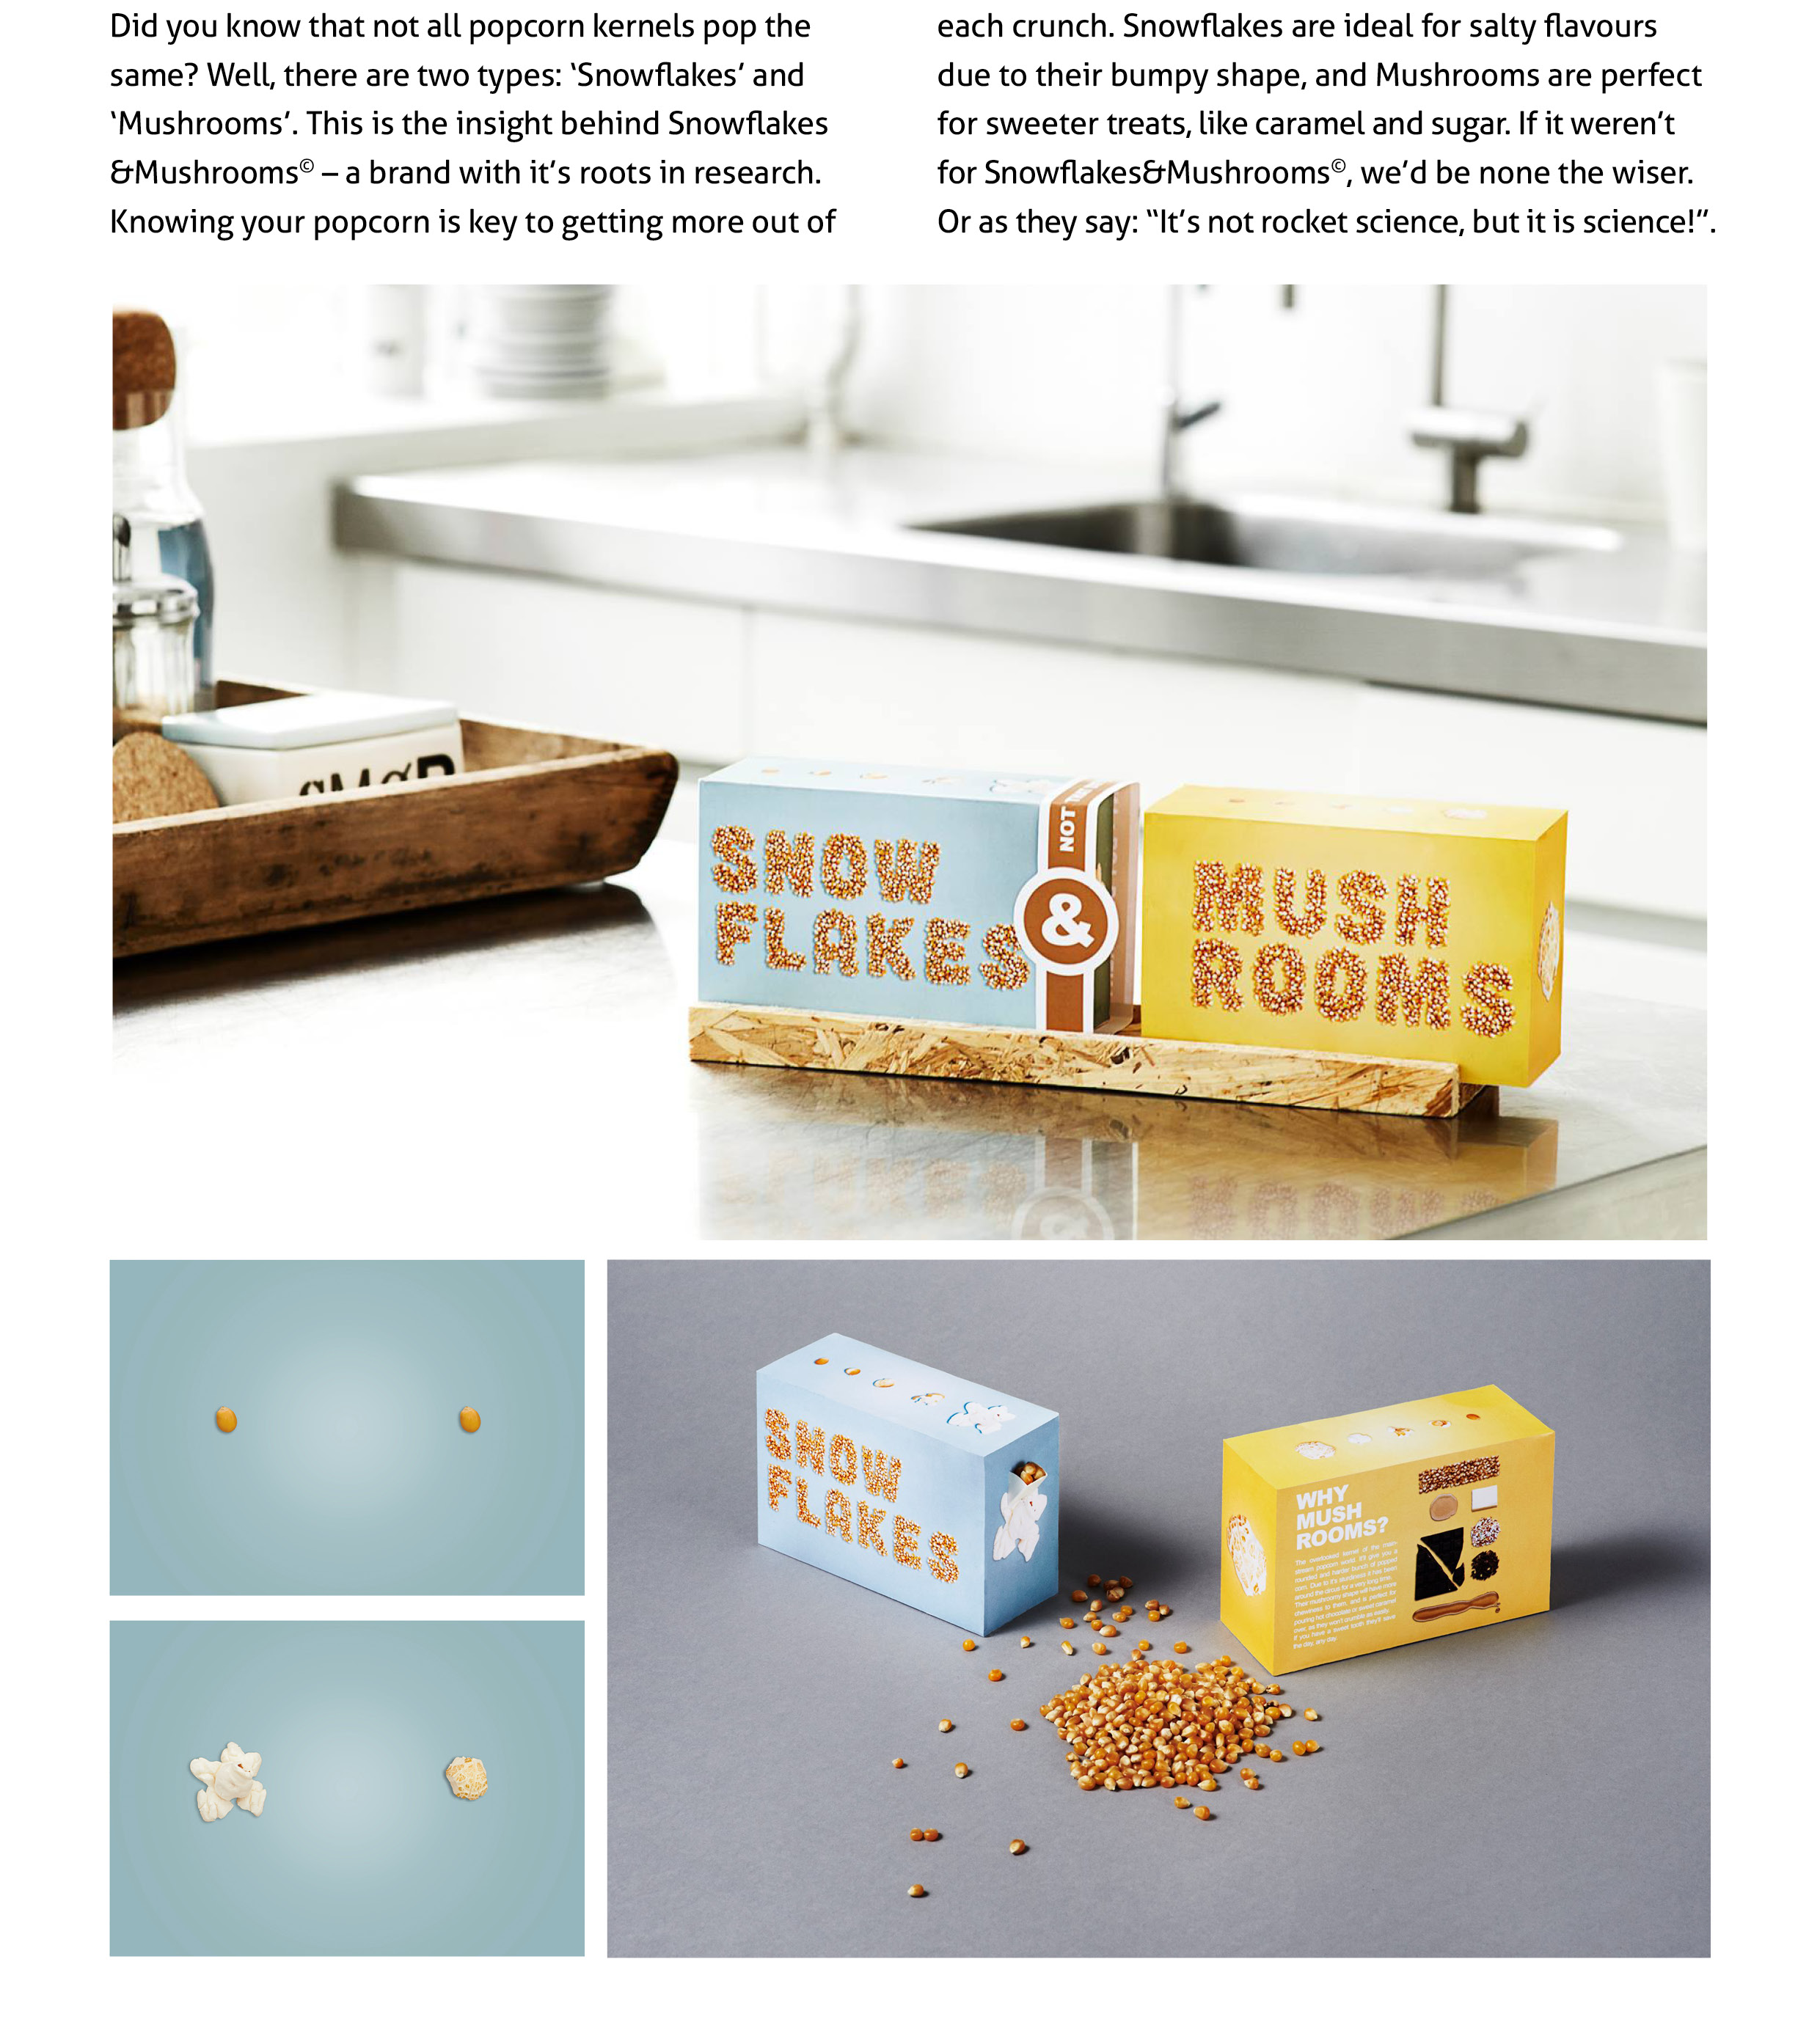 Brand_Creation_Mushrooms&Snowflakes_popcorn